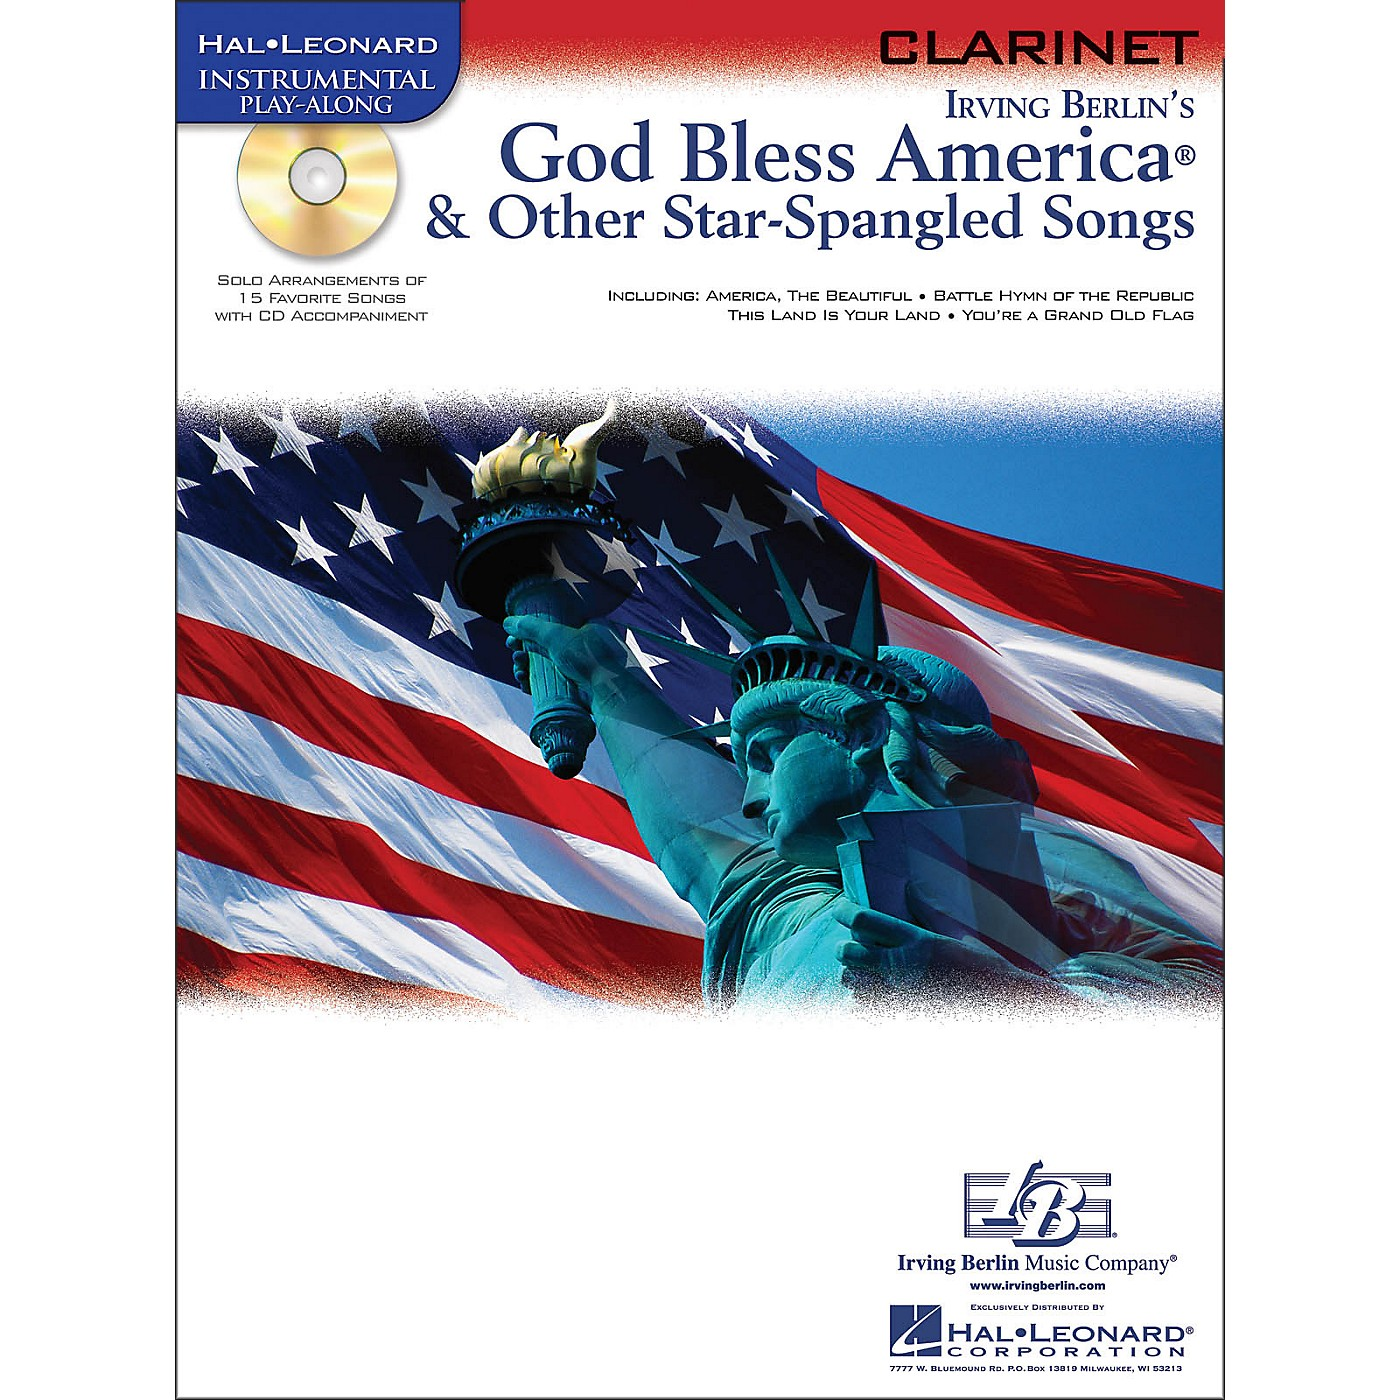 Hal Leonard God Bless America & Other Star-Spangled Songs for Clarinet instrumental Play-Along Book/CD thumbnail